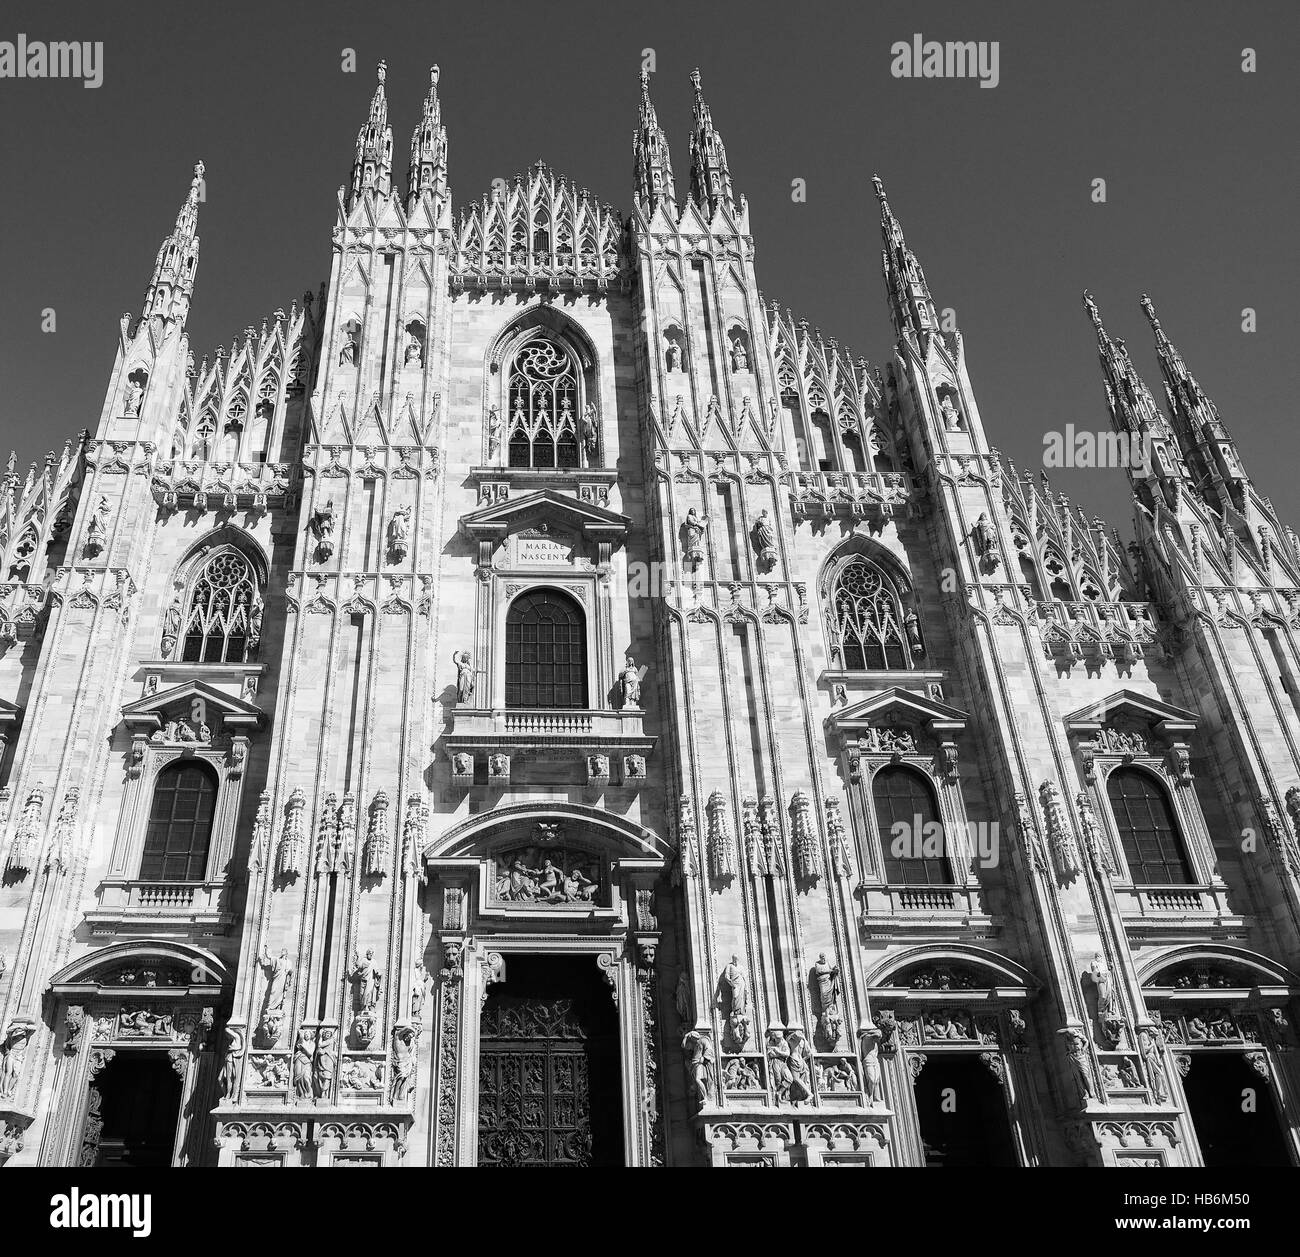 Duomo di Milano Cathedral in Milan - Stock Image